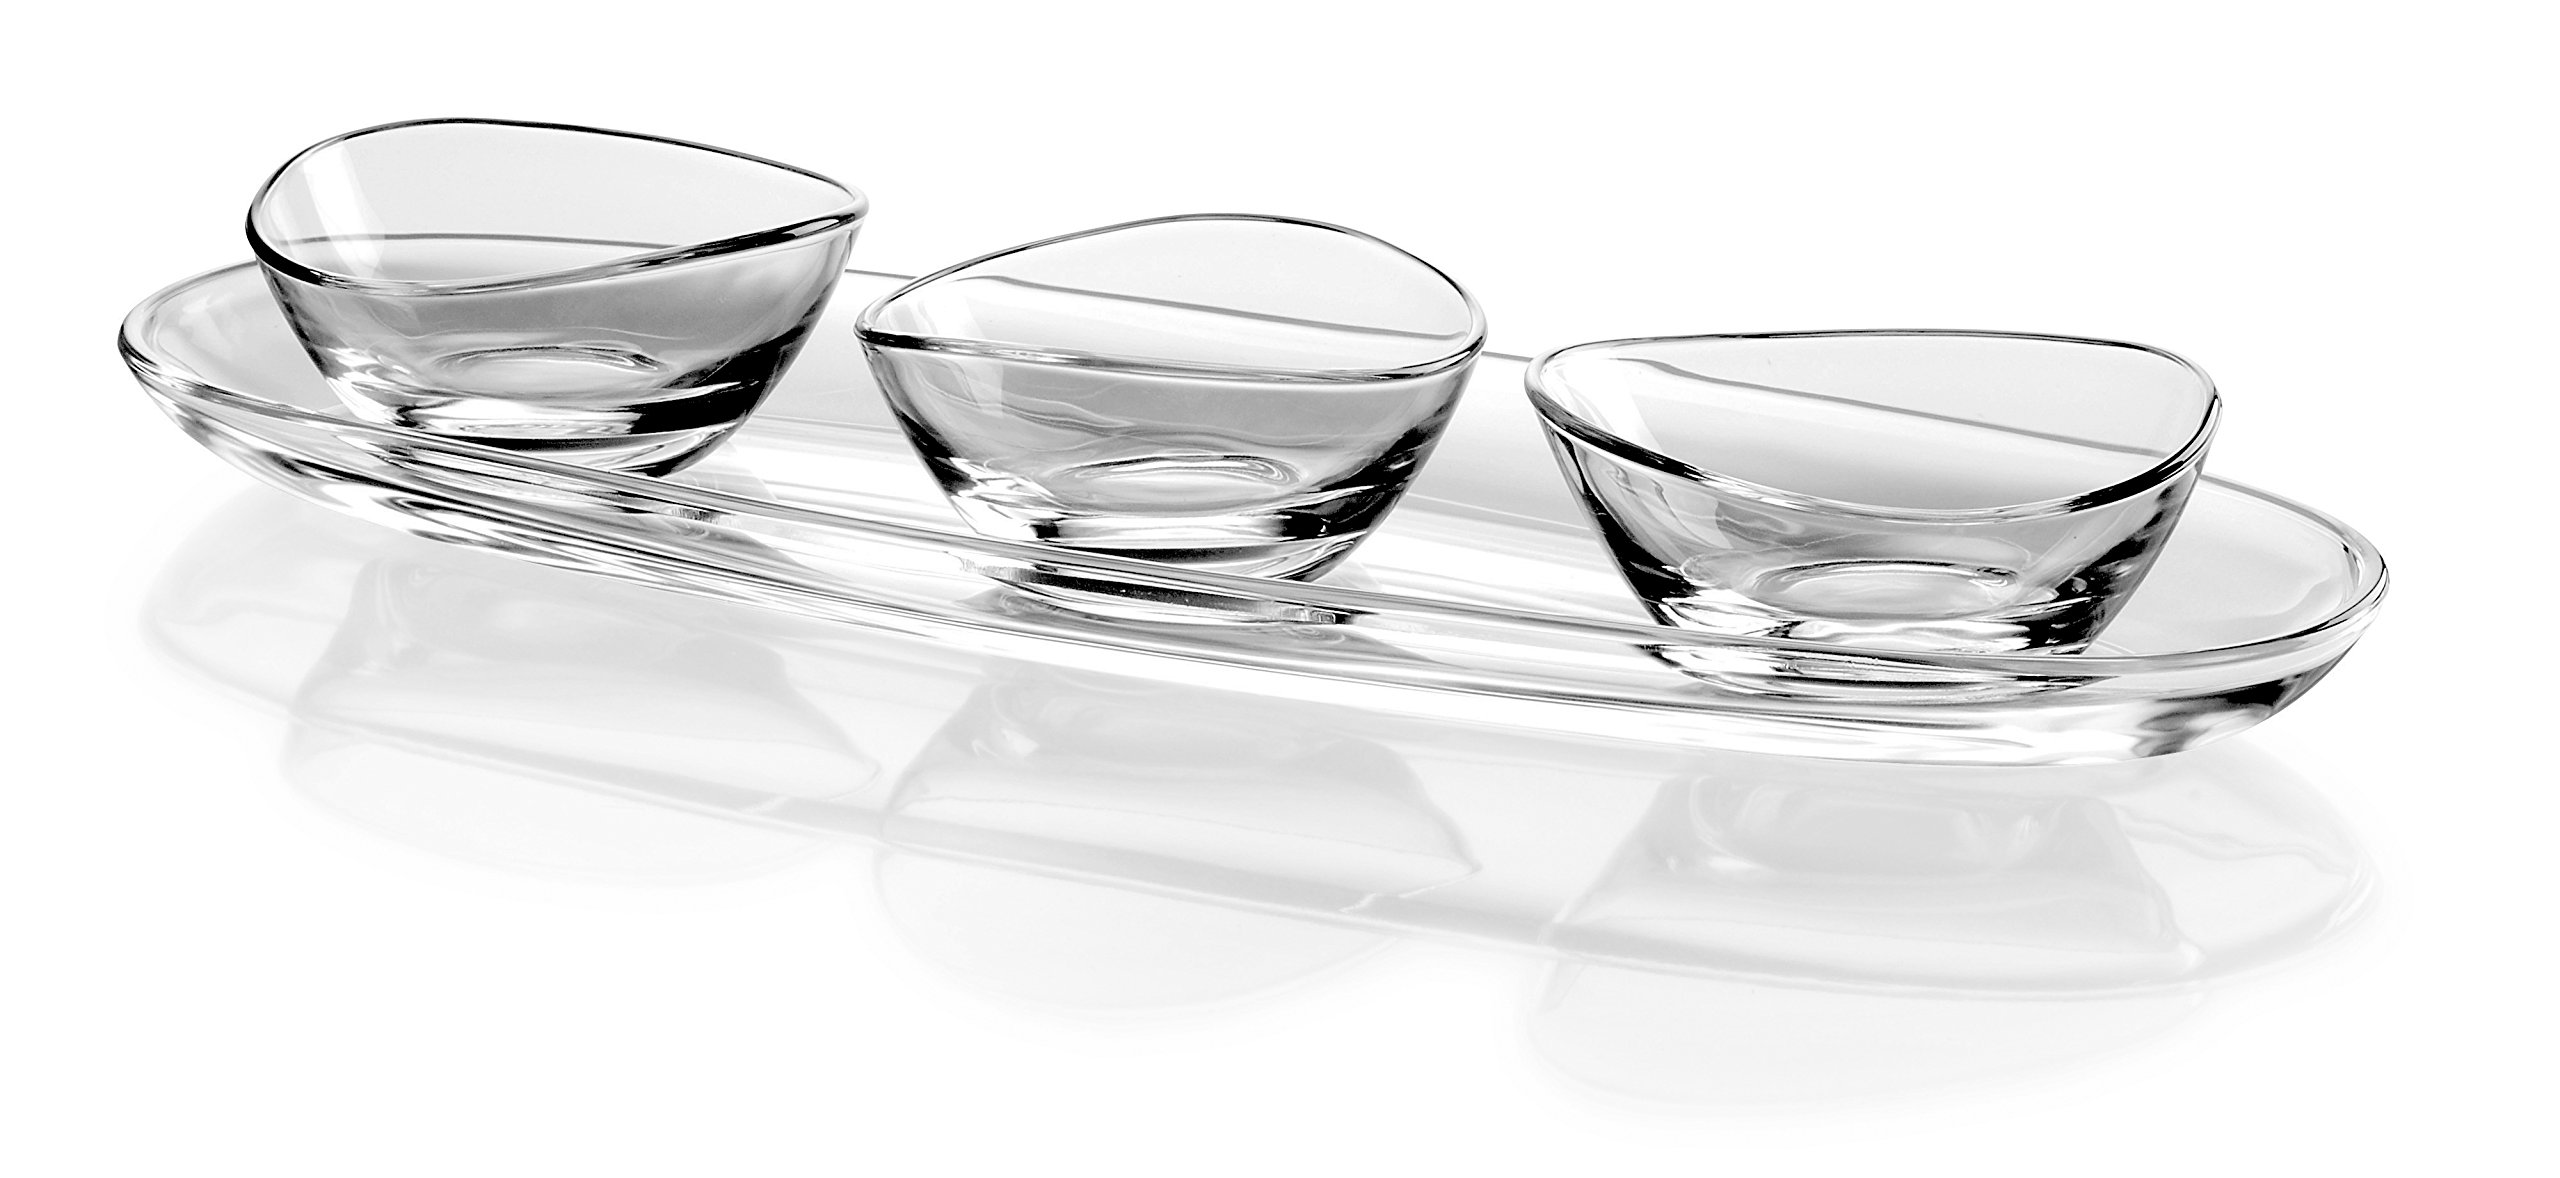 Barski European Glass - Oval - Serving Tray - Platter - 19.5'' Long - with Three Small Bowls - 5 '' Diameter - Could Be Used for Snack Server Or For Dips - 4 Piece Set - Made in Europe